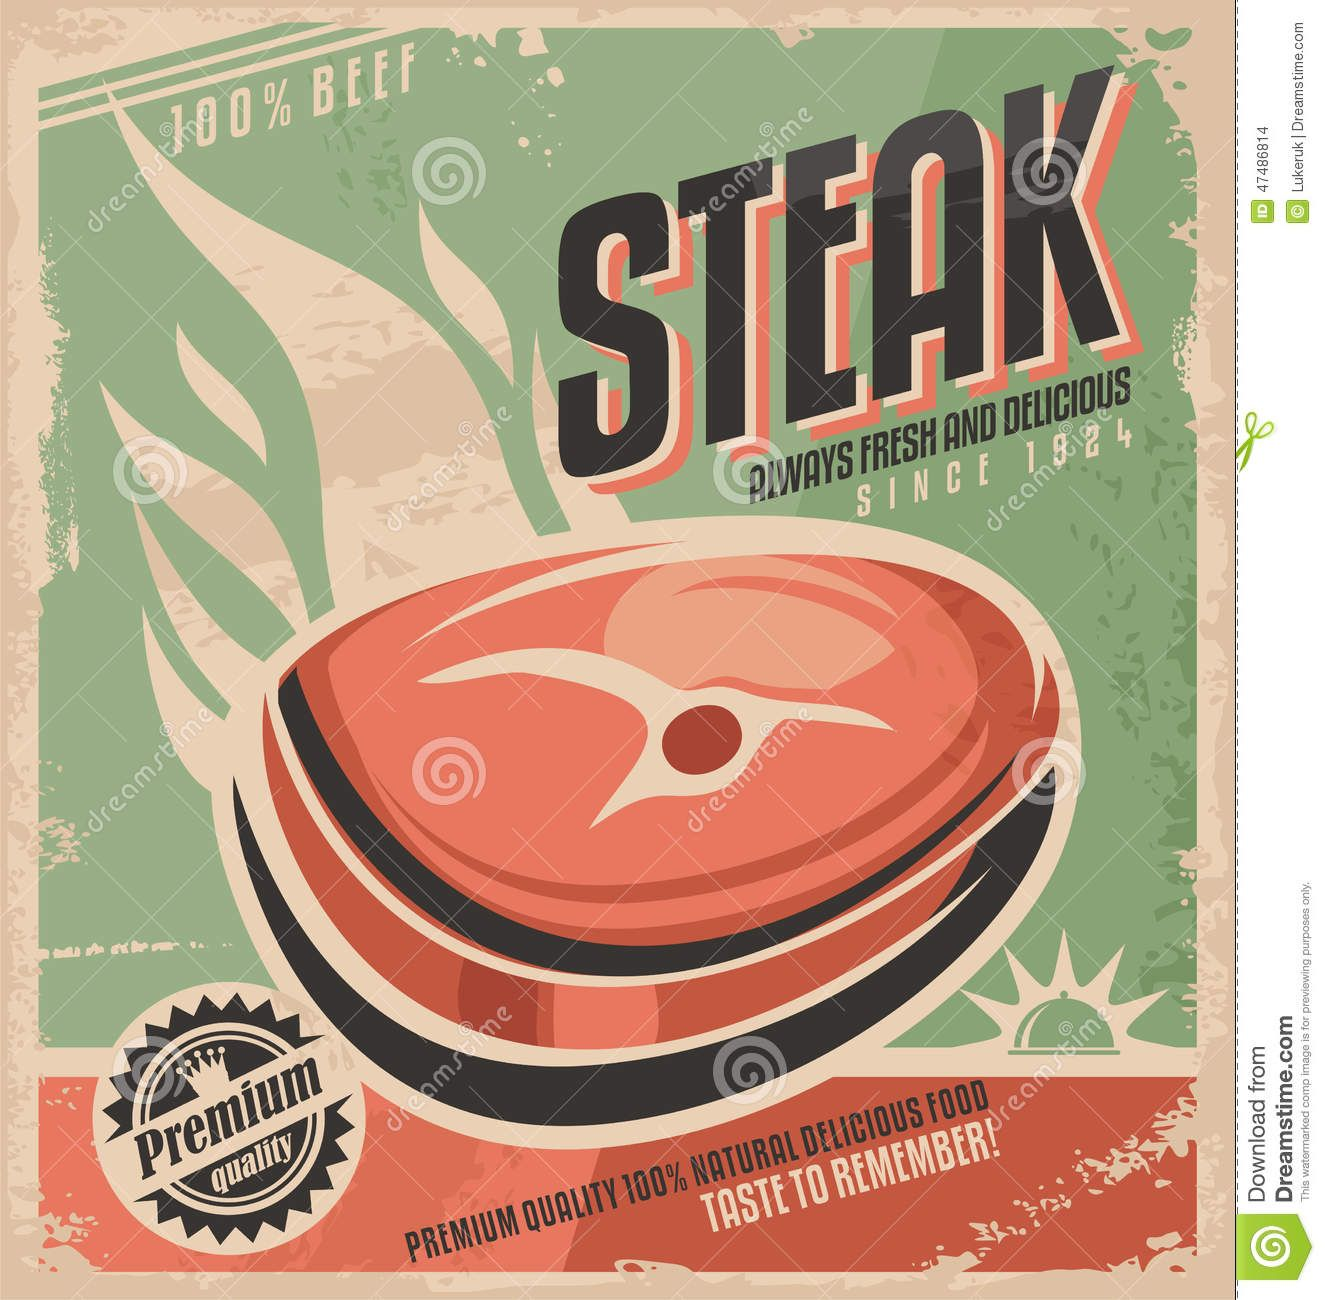 Steak Retro Poster Design Vintage Restaurant Menu Template